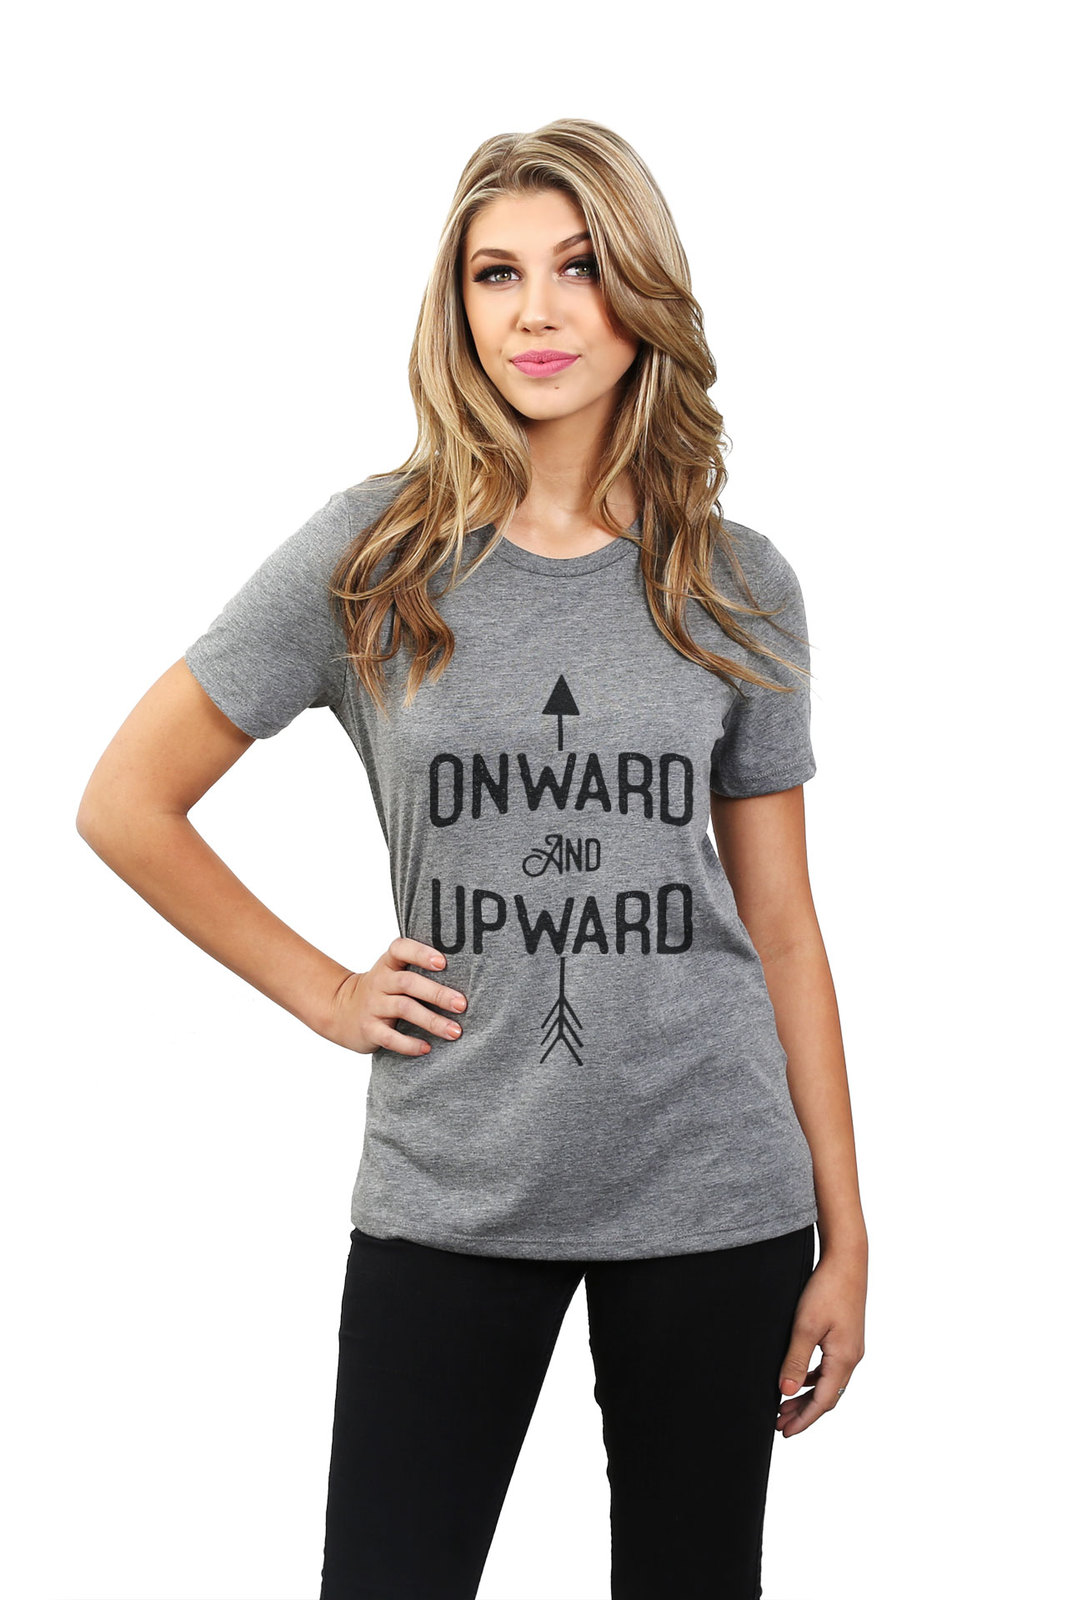 Thread Tank Onward And Upward Women's Relaxed T-Shirt Tee Heather Grey